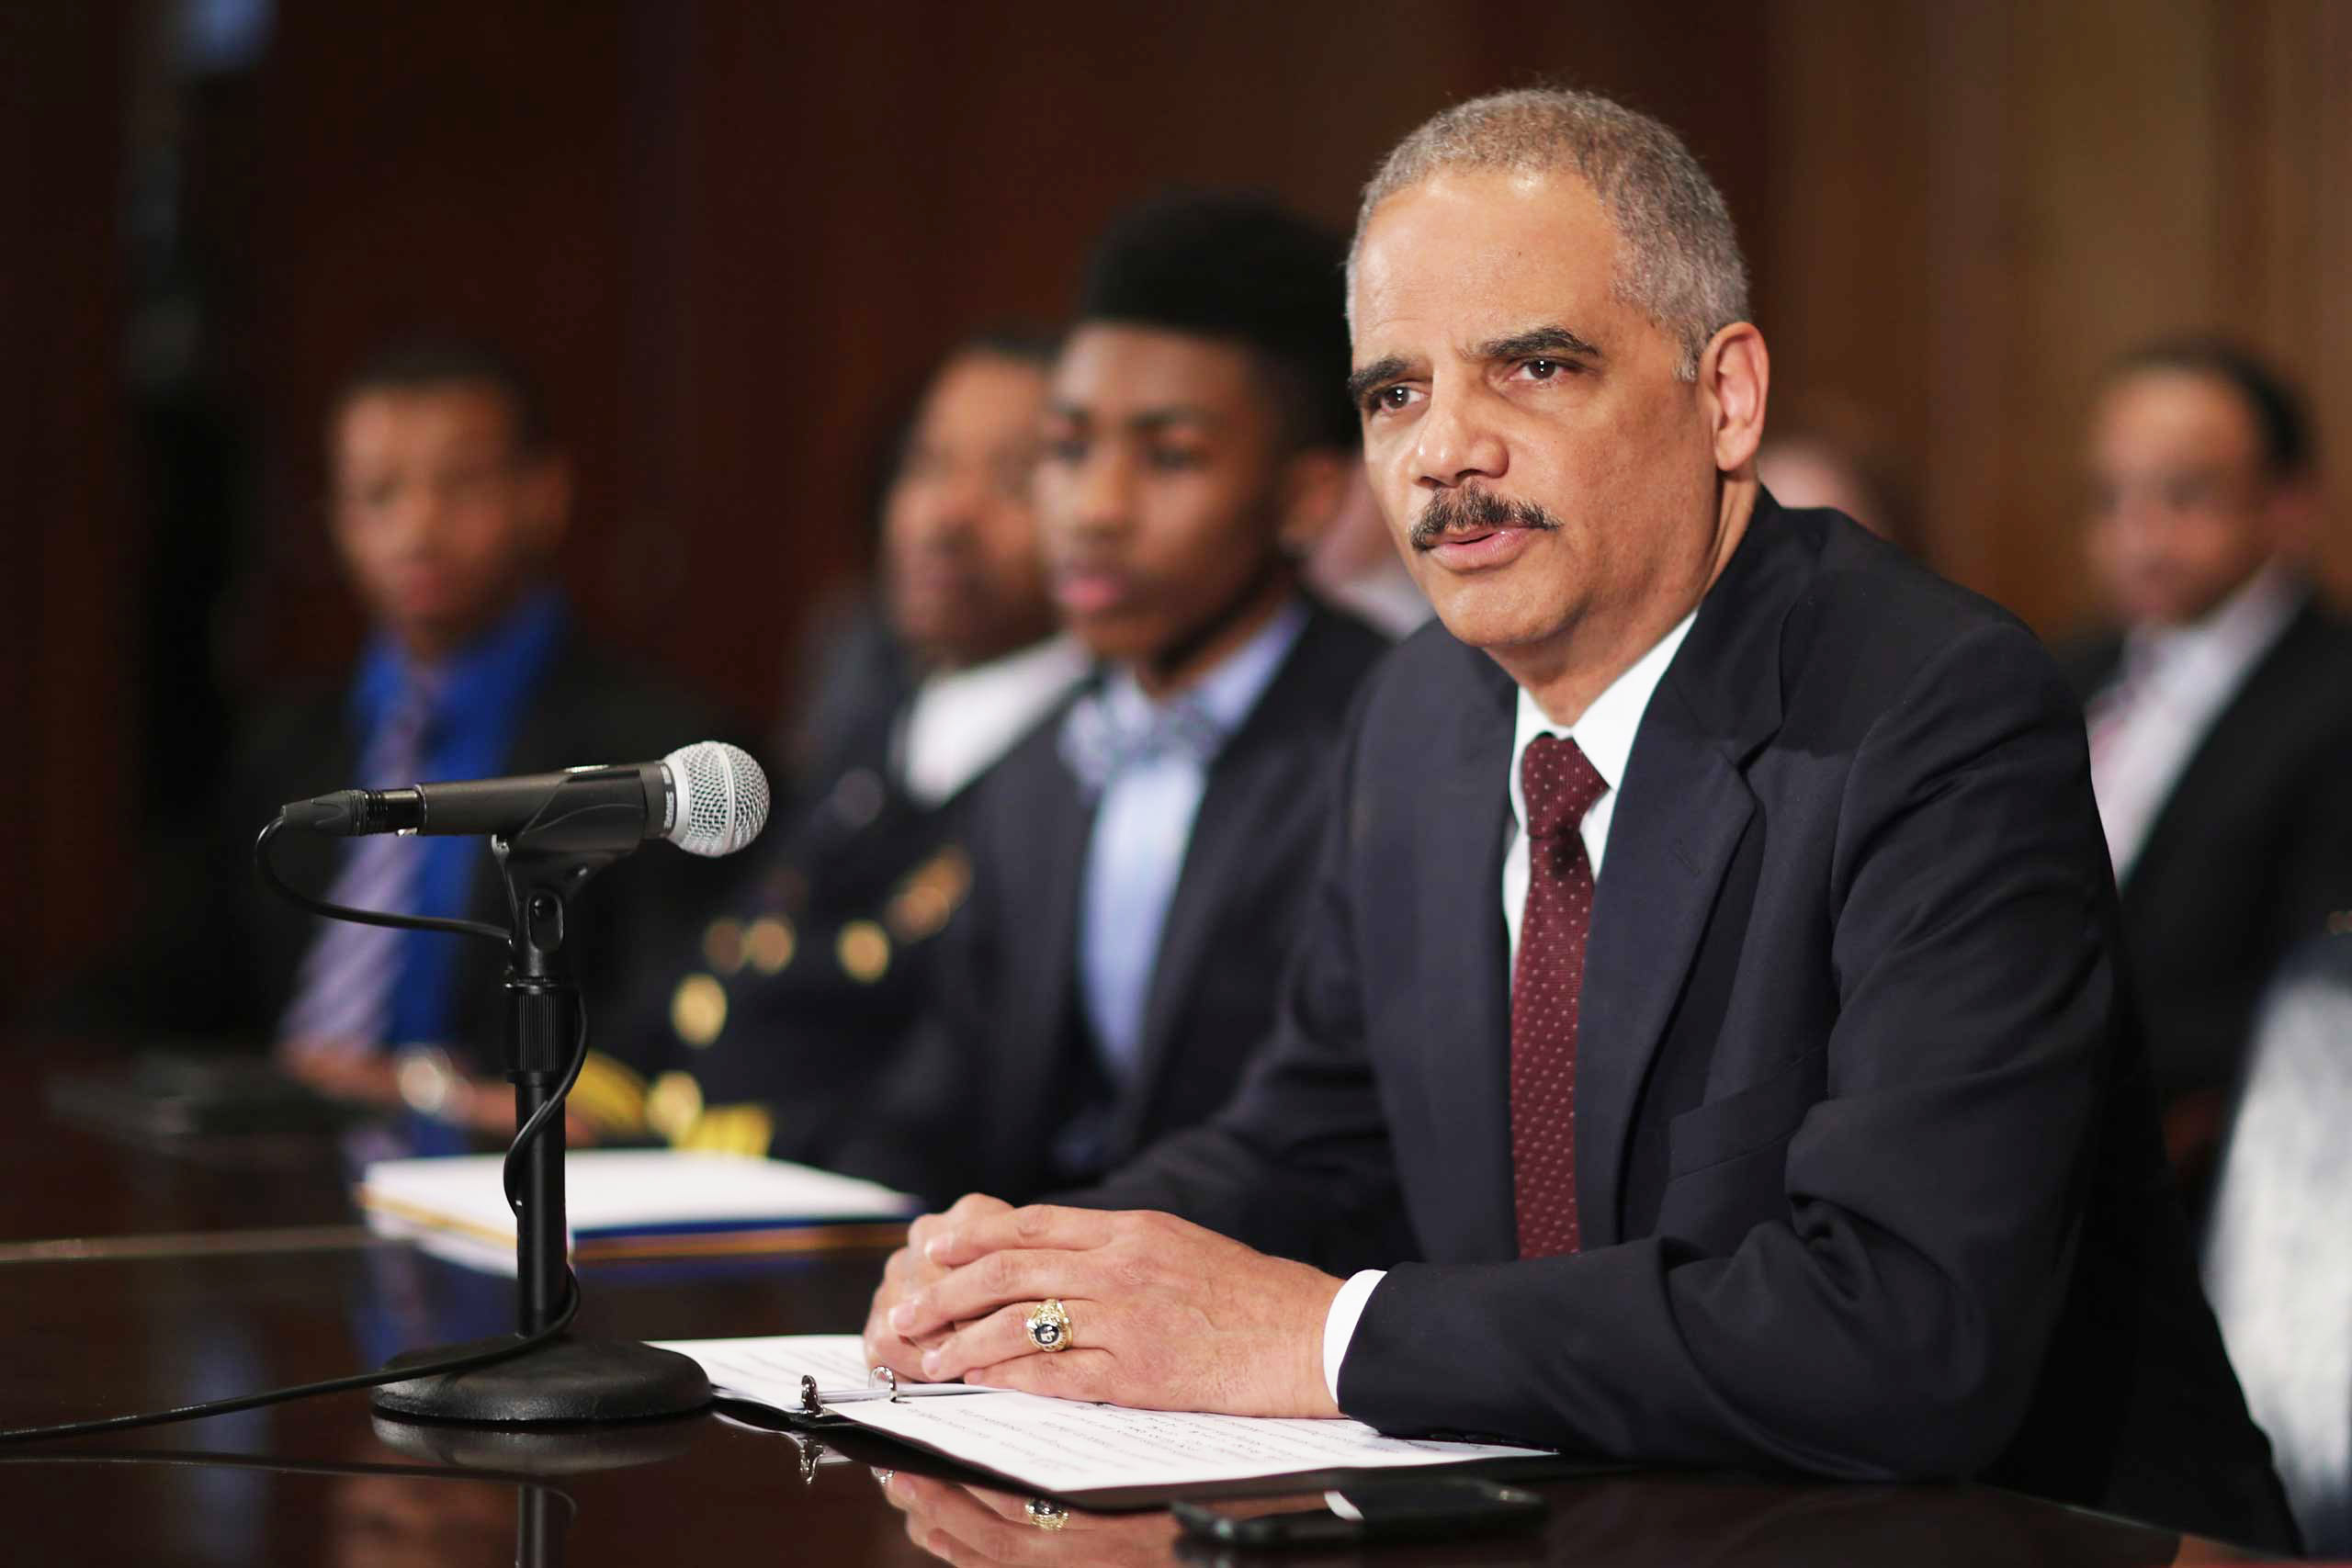 U.S. Attorney General Eric Holder delivers remarks about the shooting of two police officers in Ferguson, Mo., while announcing the first six pilot sites for the National Initiative for Building Community Trust and Justice at the Department of Justice in Washington, D.C., on March 12, 2015